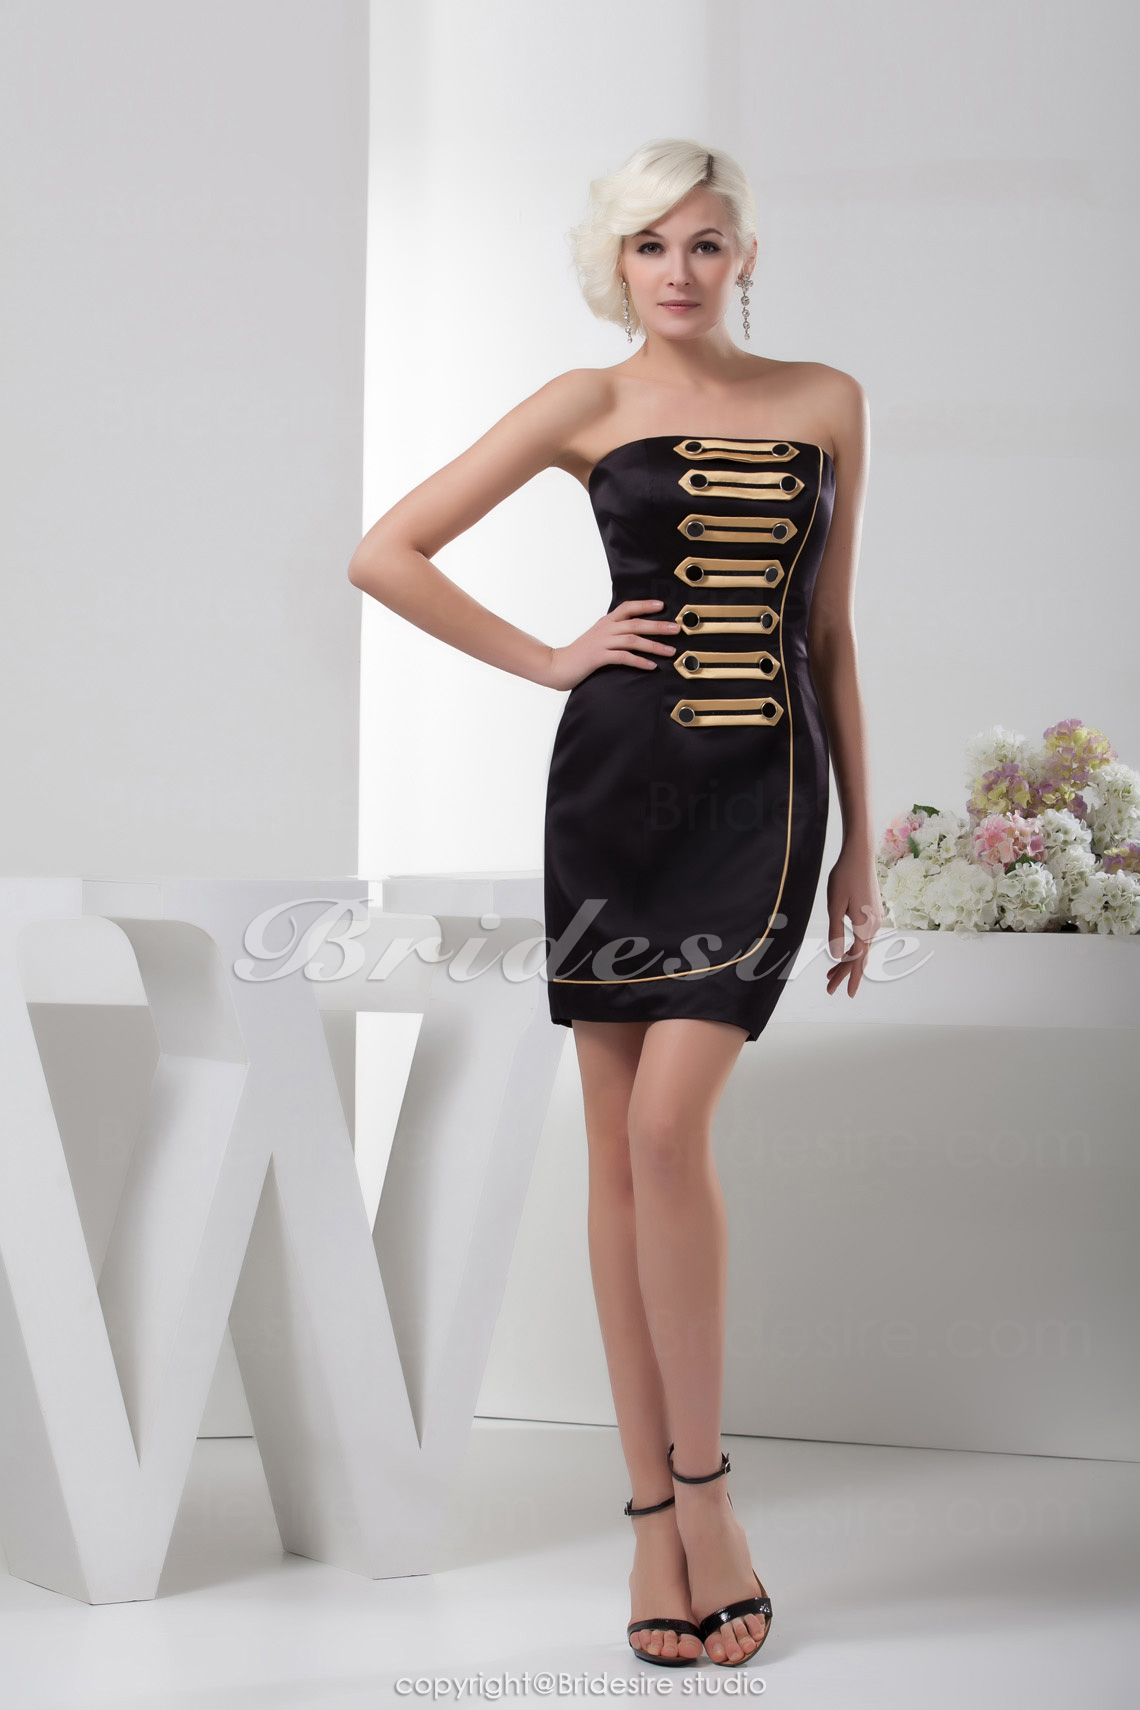 Sheath/Column Strapless Knee-length Sleeveless Satin Dress